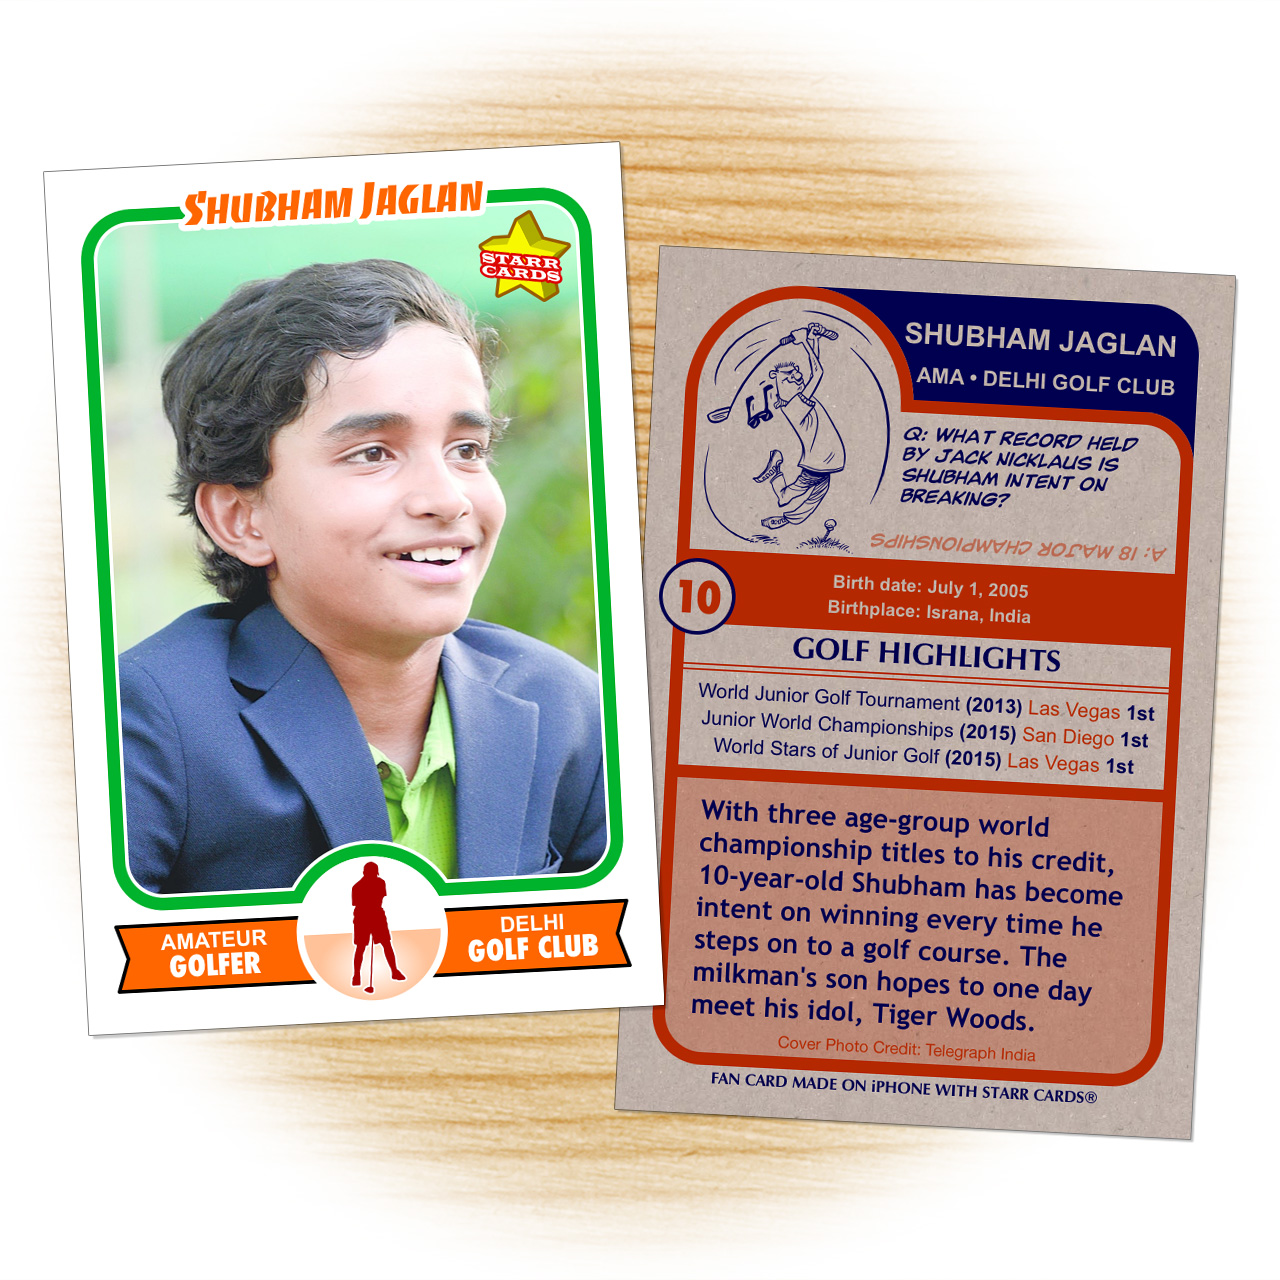 Sports card made by fan of golfer Shubham Jaglan